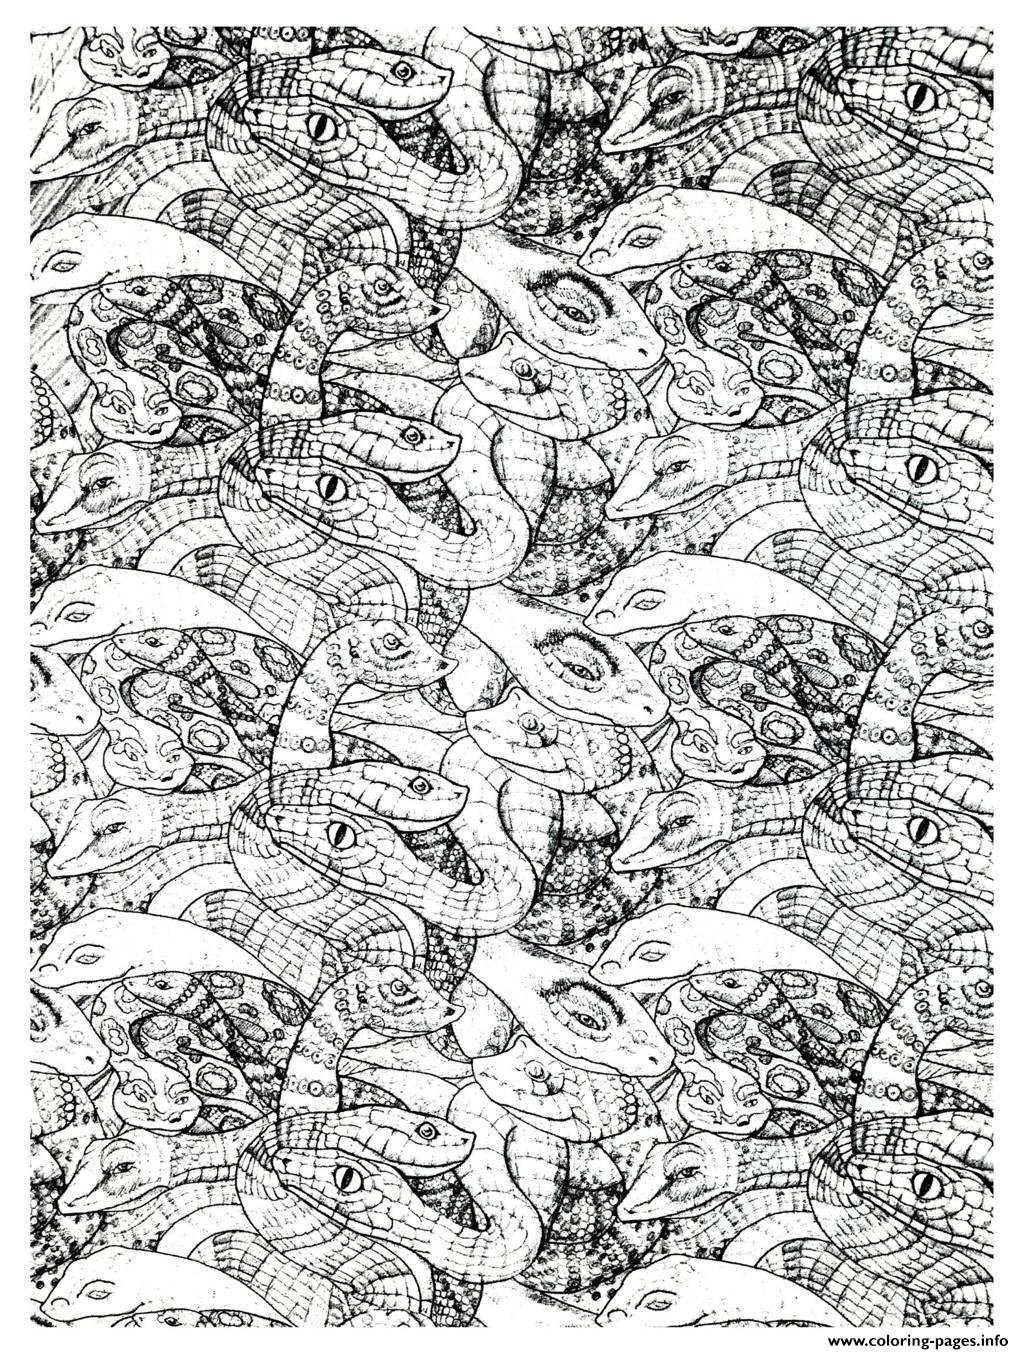 adults snakes complex coloring pages printable - Complex Coloring Pages